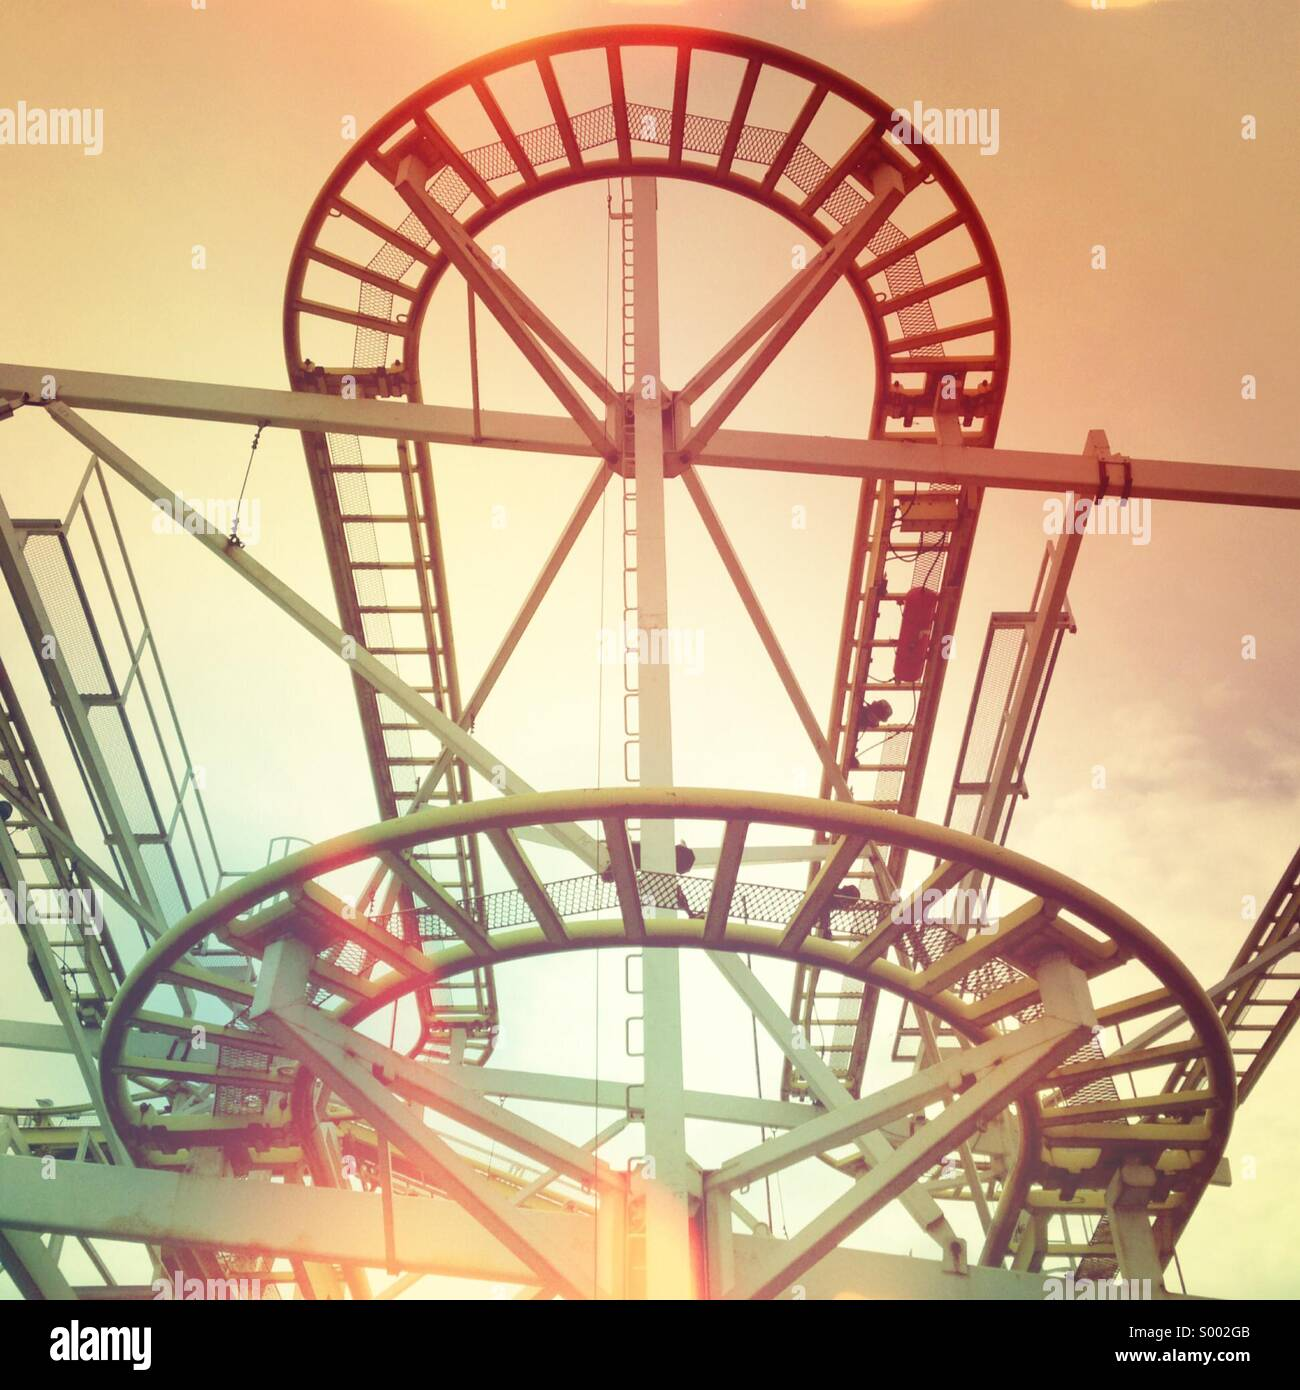 Graphic roller coaster frame - Stock Image